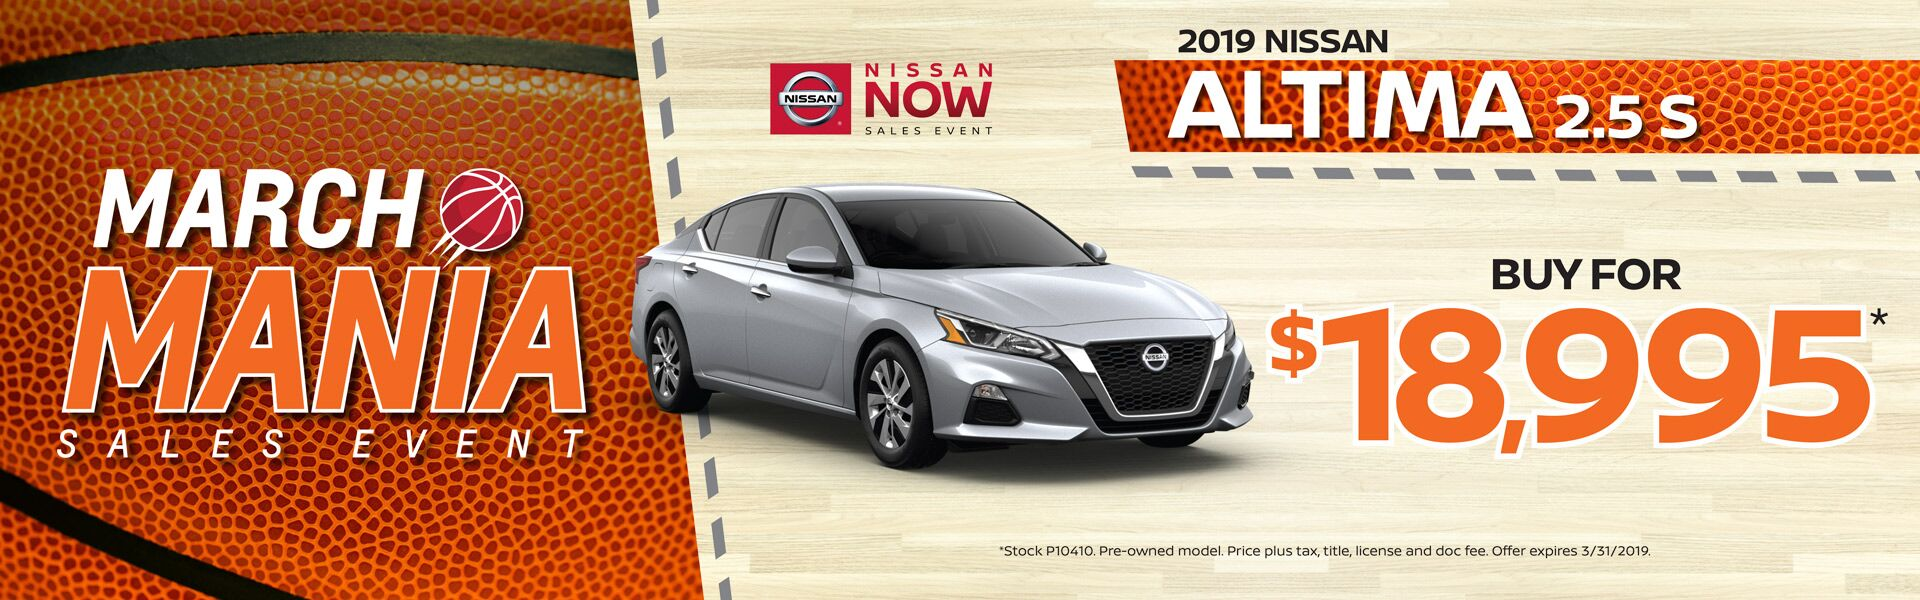 March Altima HP Banner